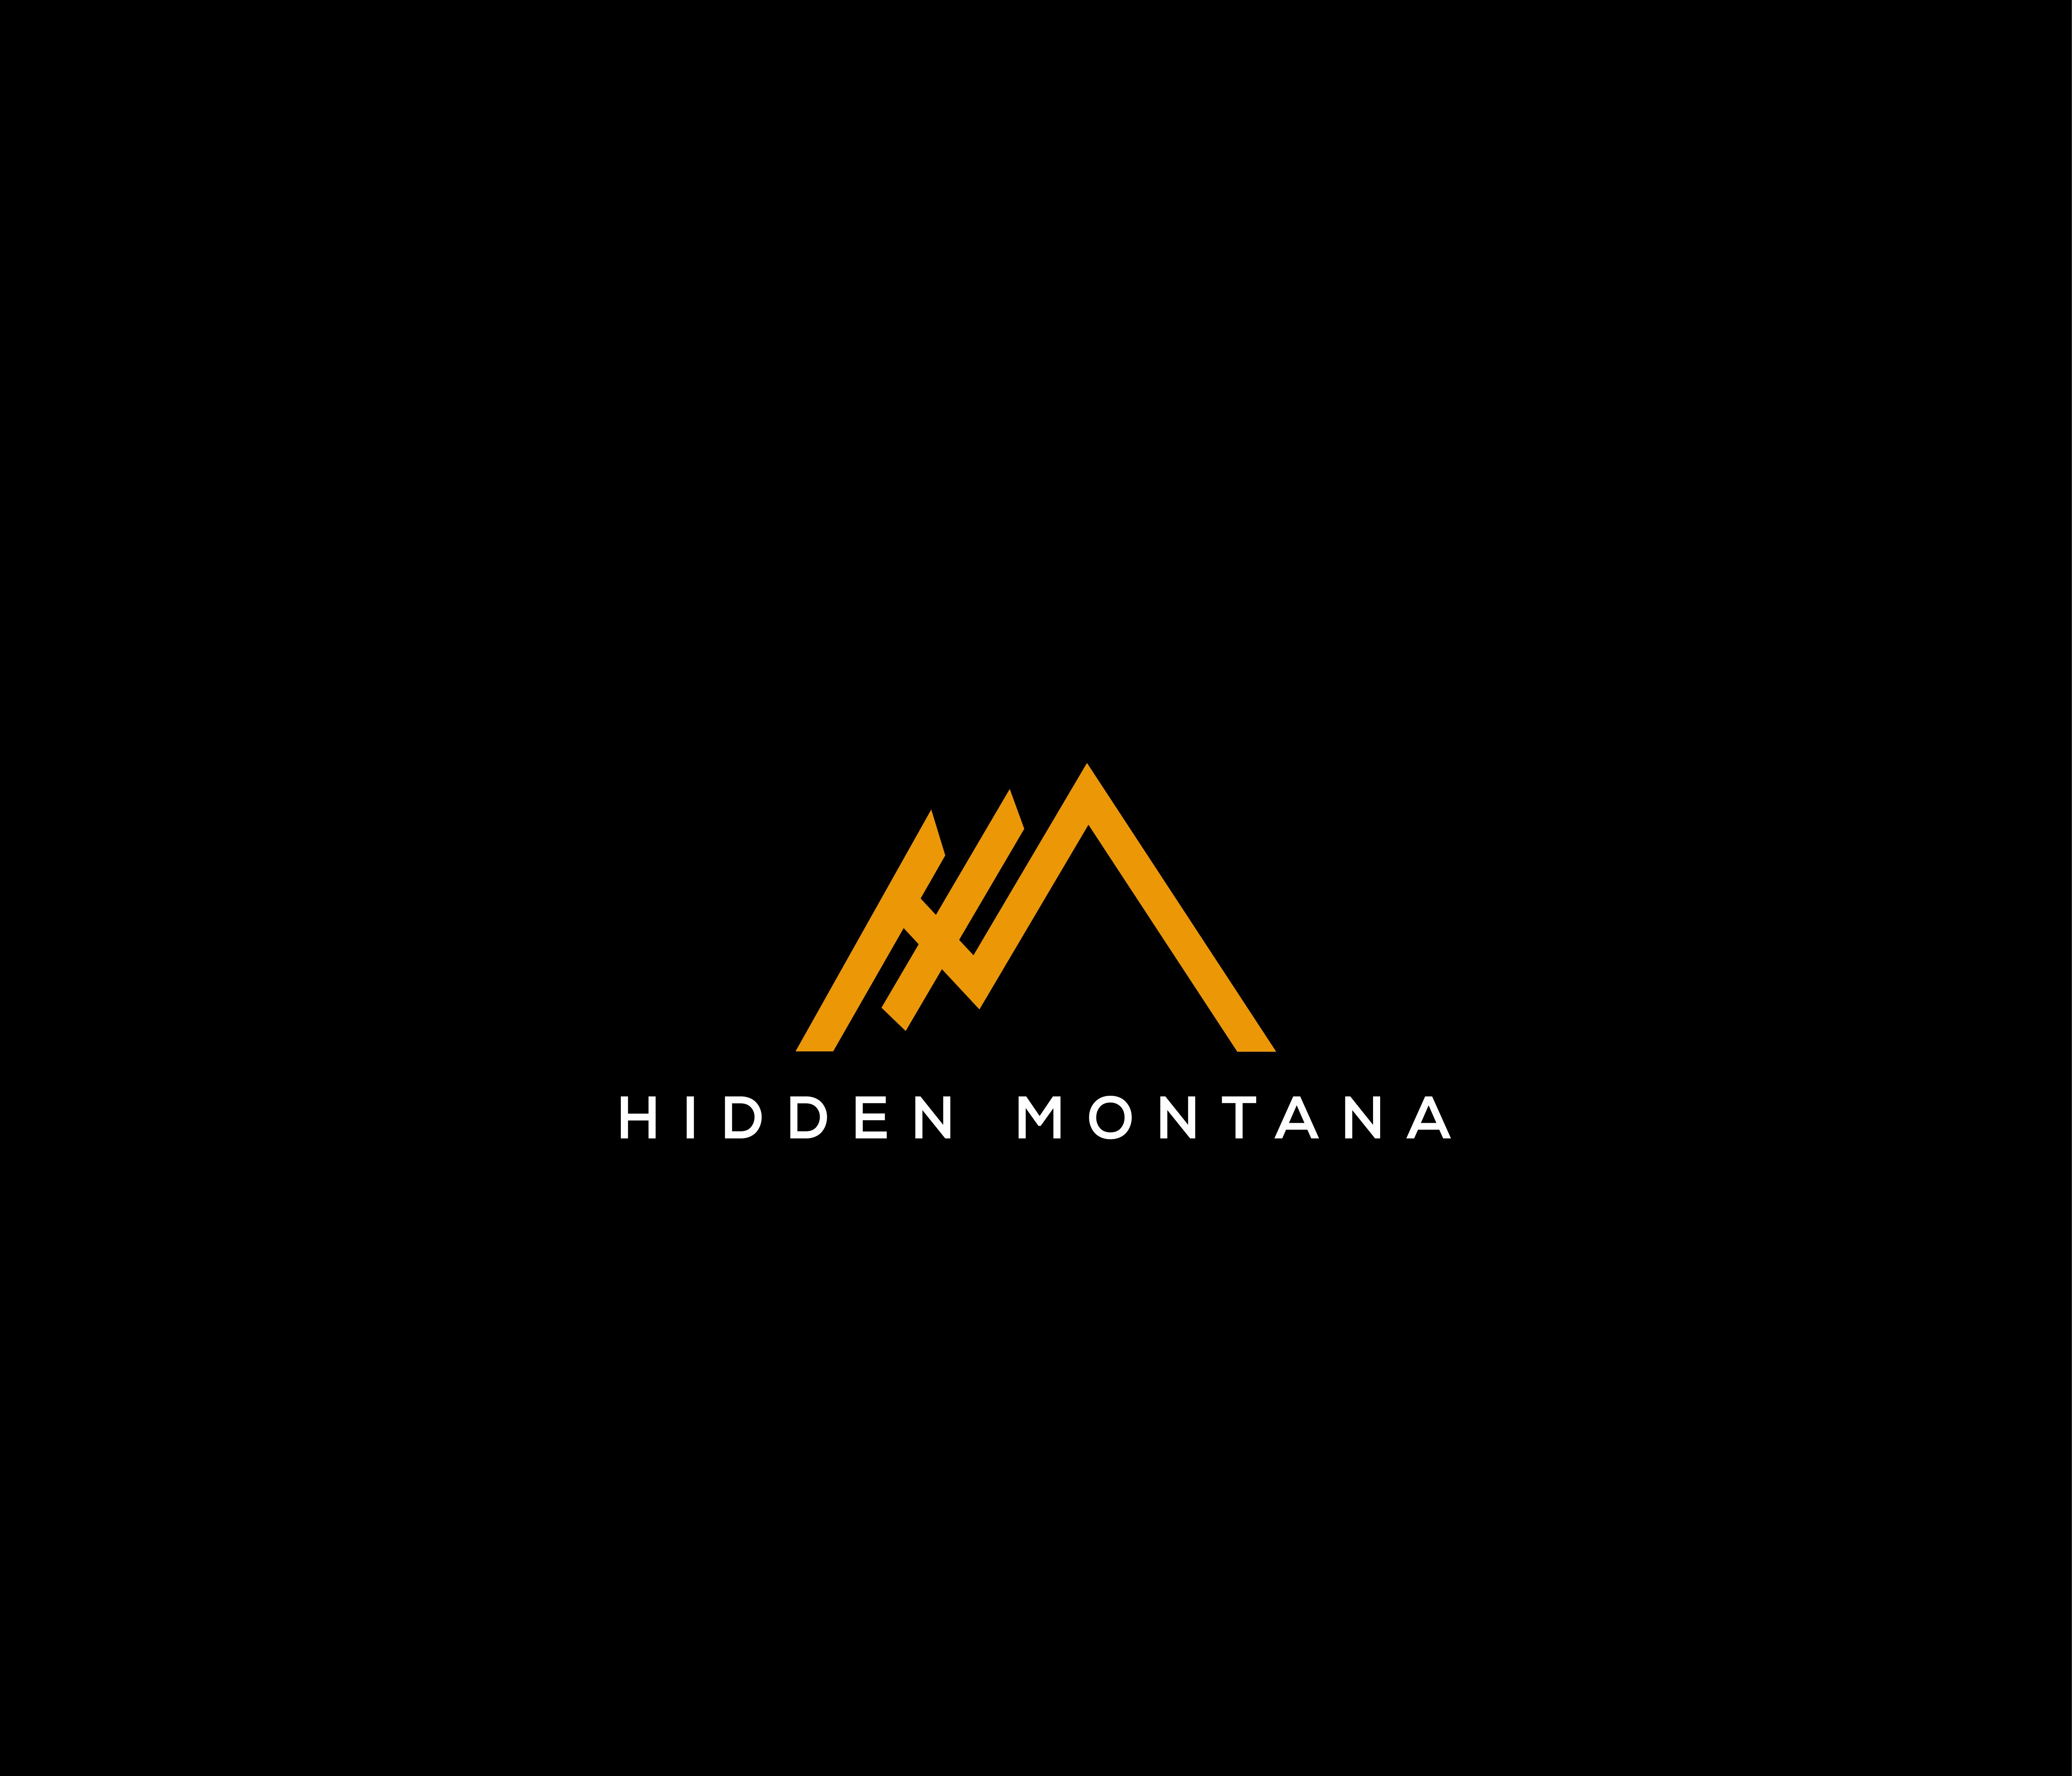 Create a modern, upbeat logo for an outdoorsy events website